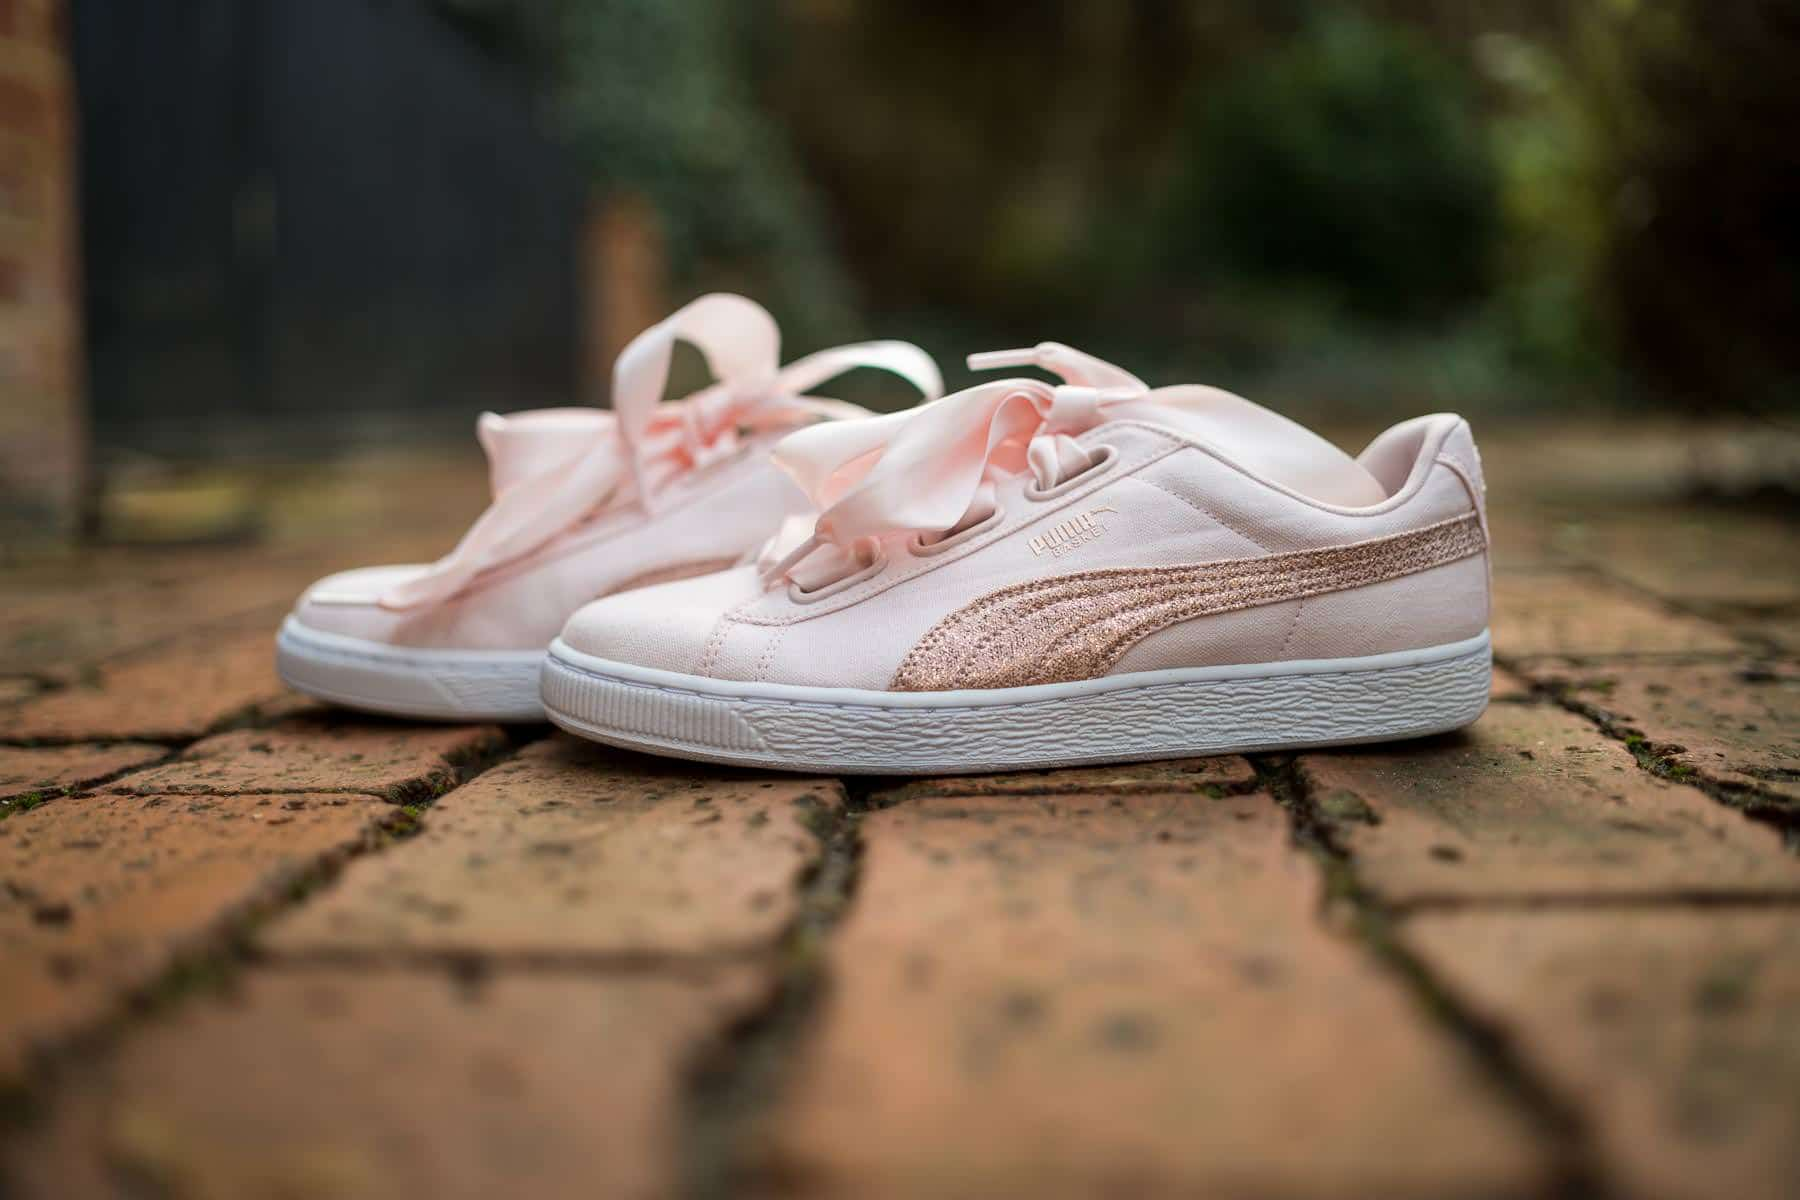 puma trainers as bridal shoes with ribbons